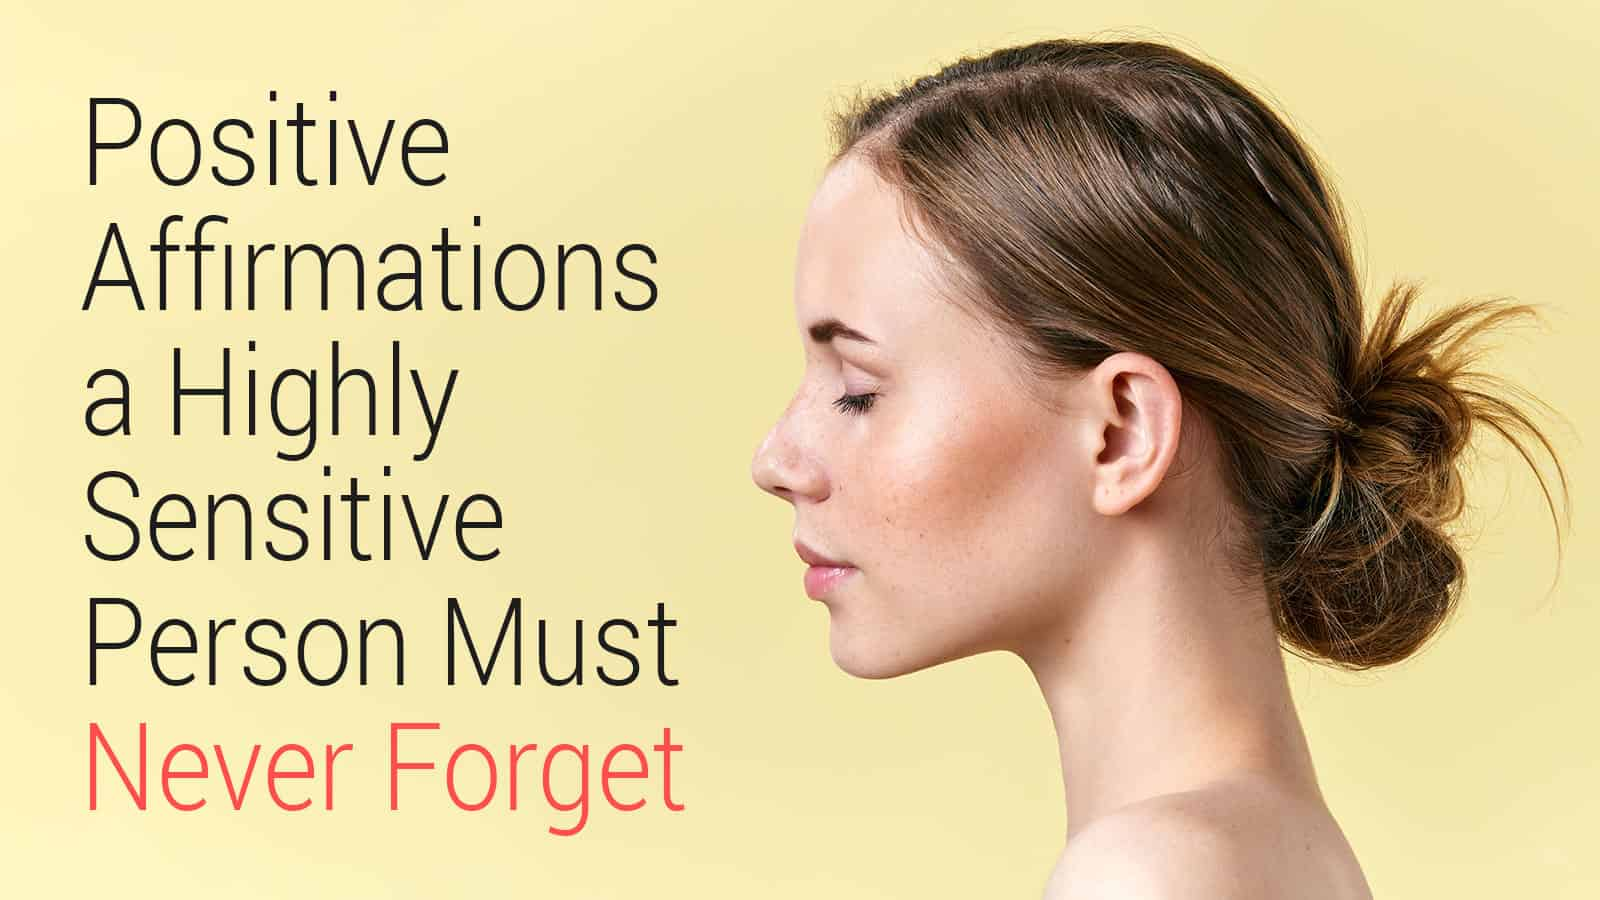 Positive Affirmations A Highly Sensitive Person Must Never